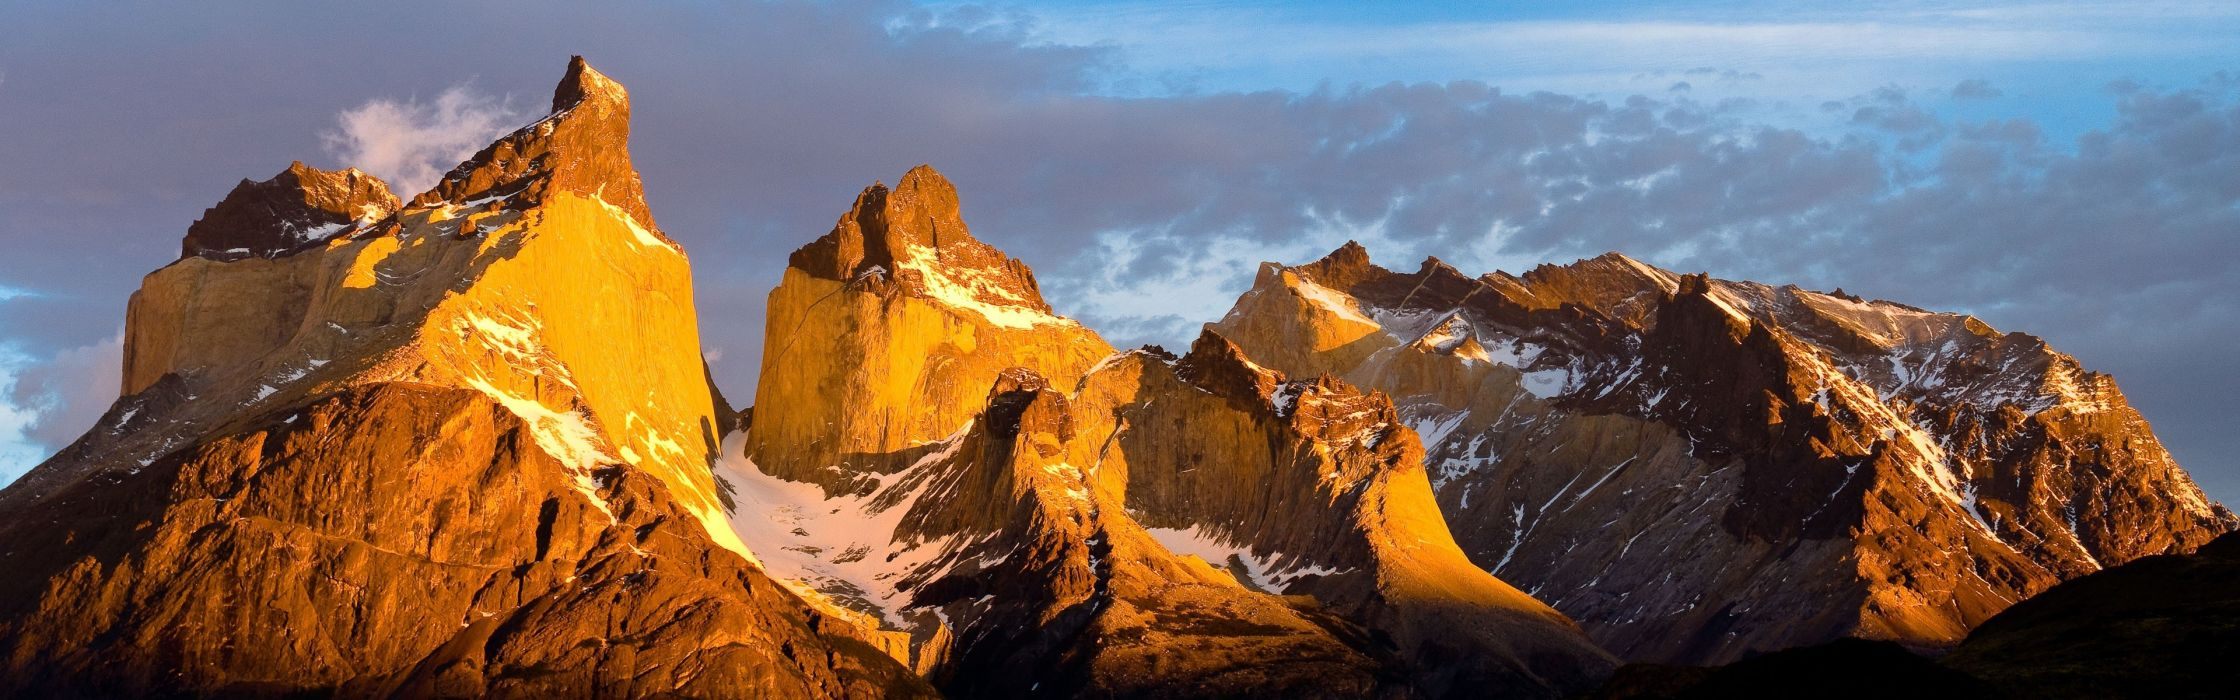 Chile mountains clouds landscapes snow panorama Patagonia wallpaper